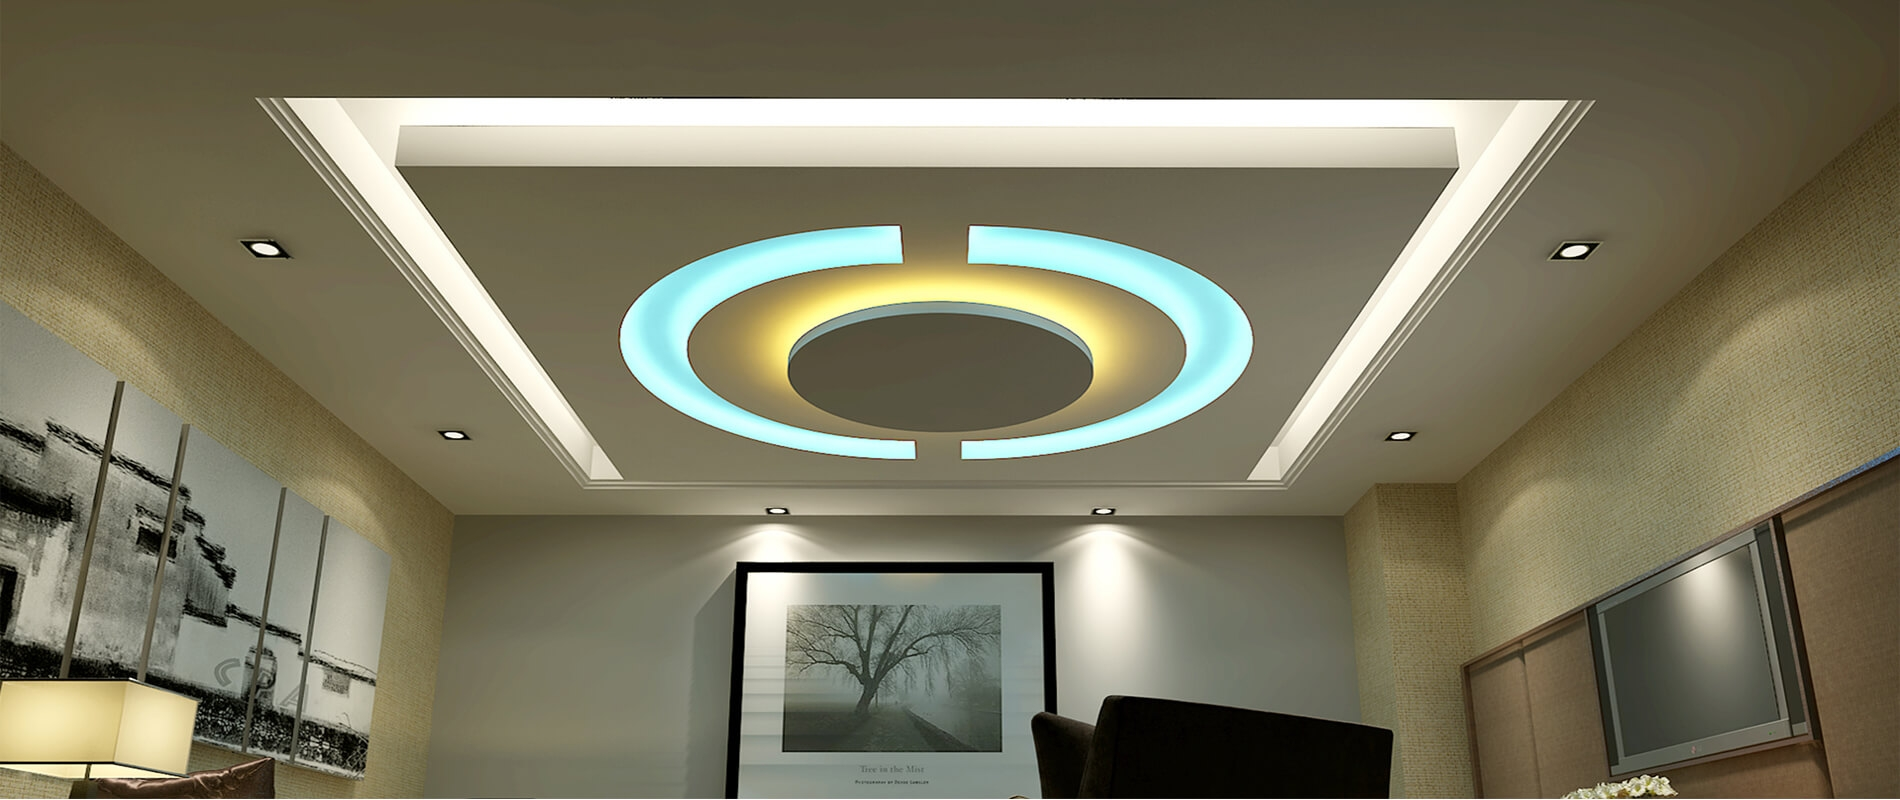 Design Ceiling Gypsum Ceiling  Plain ceiling